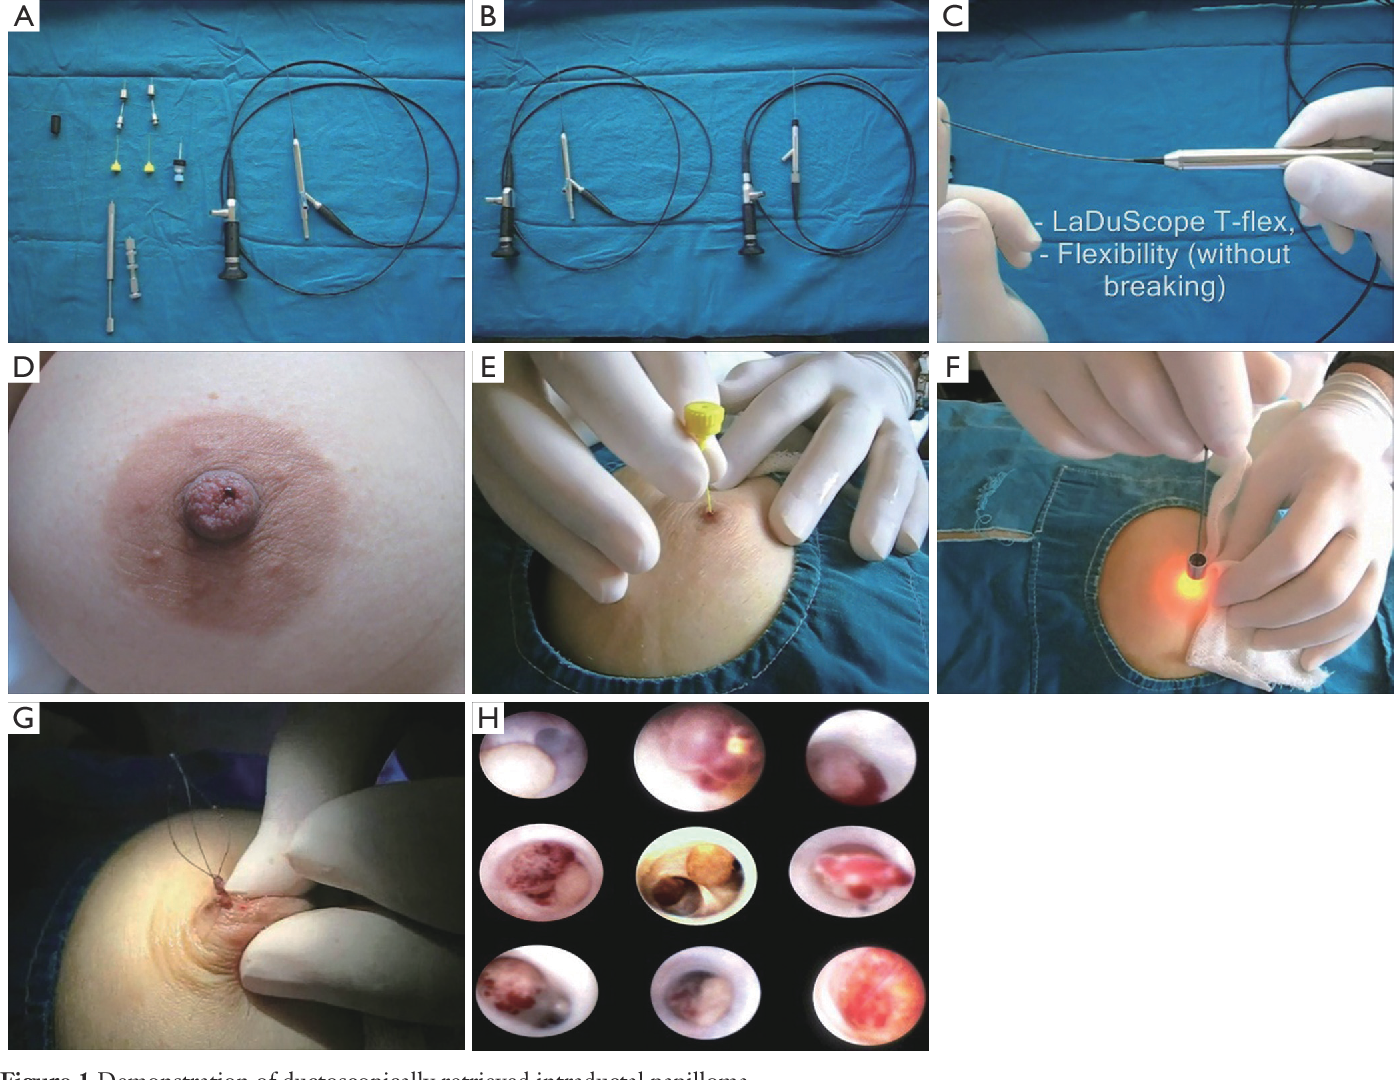 intraductal papilloma excision procedure)